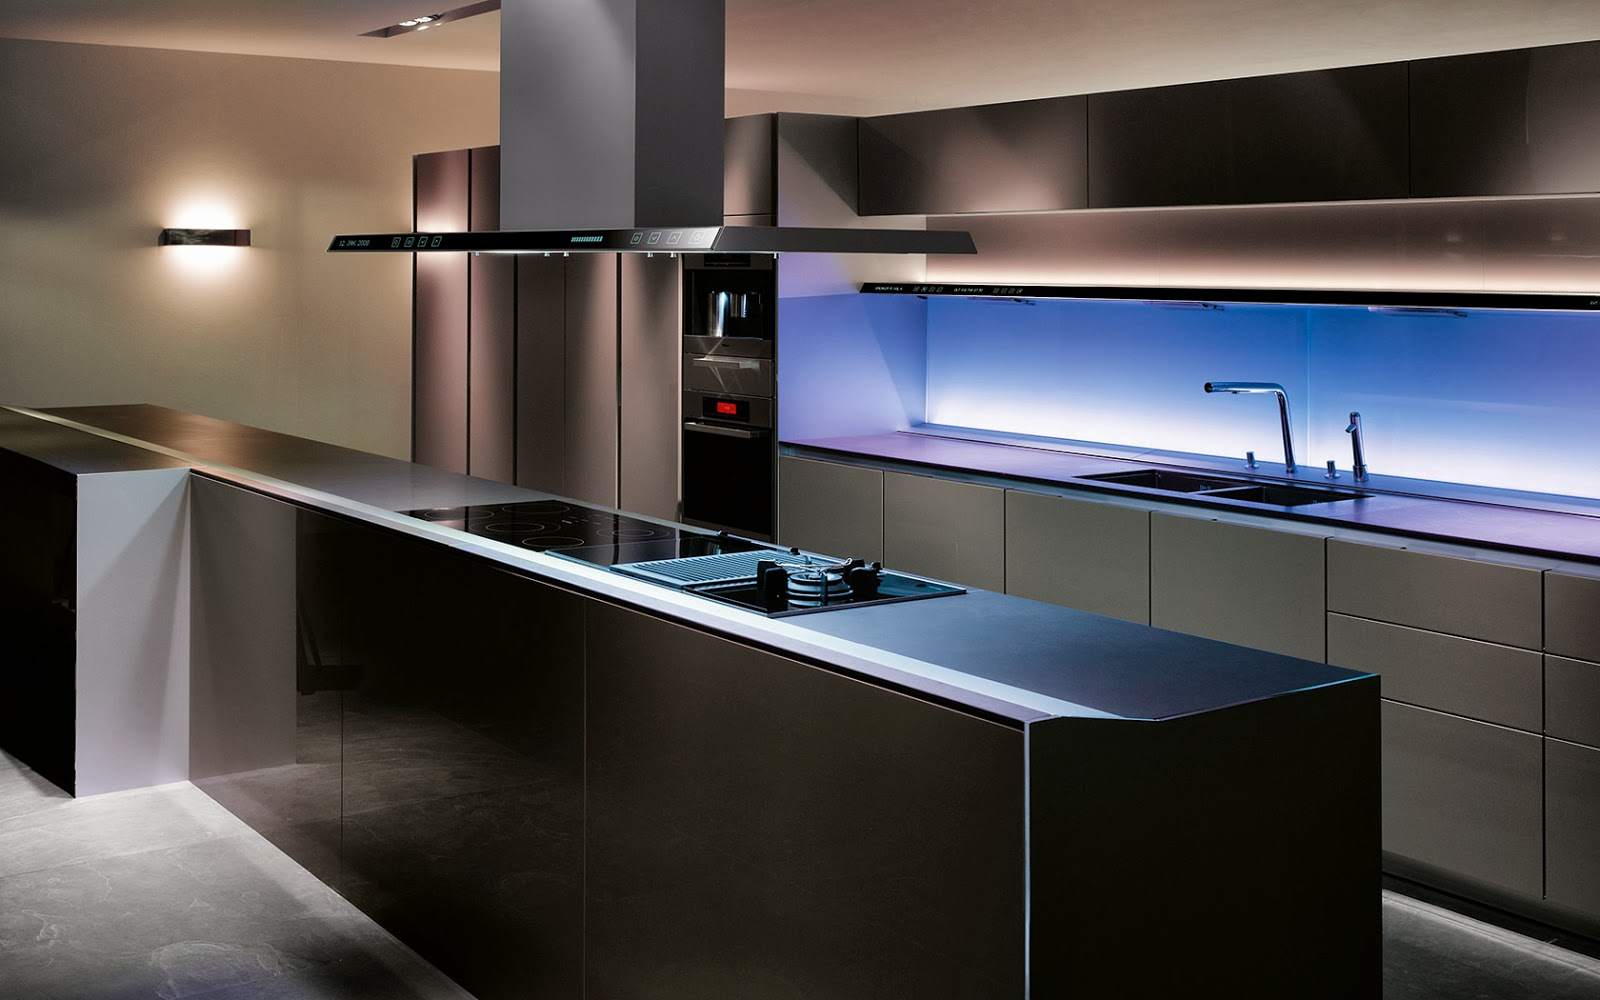 Cuisine amenagee - Cuisine ultra design ...